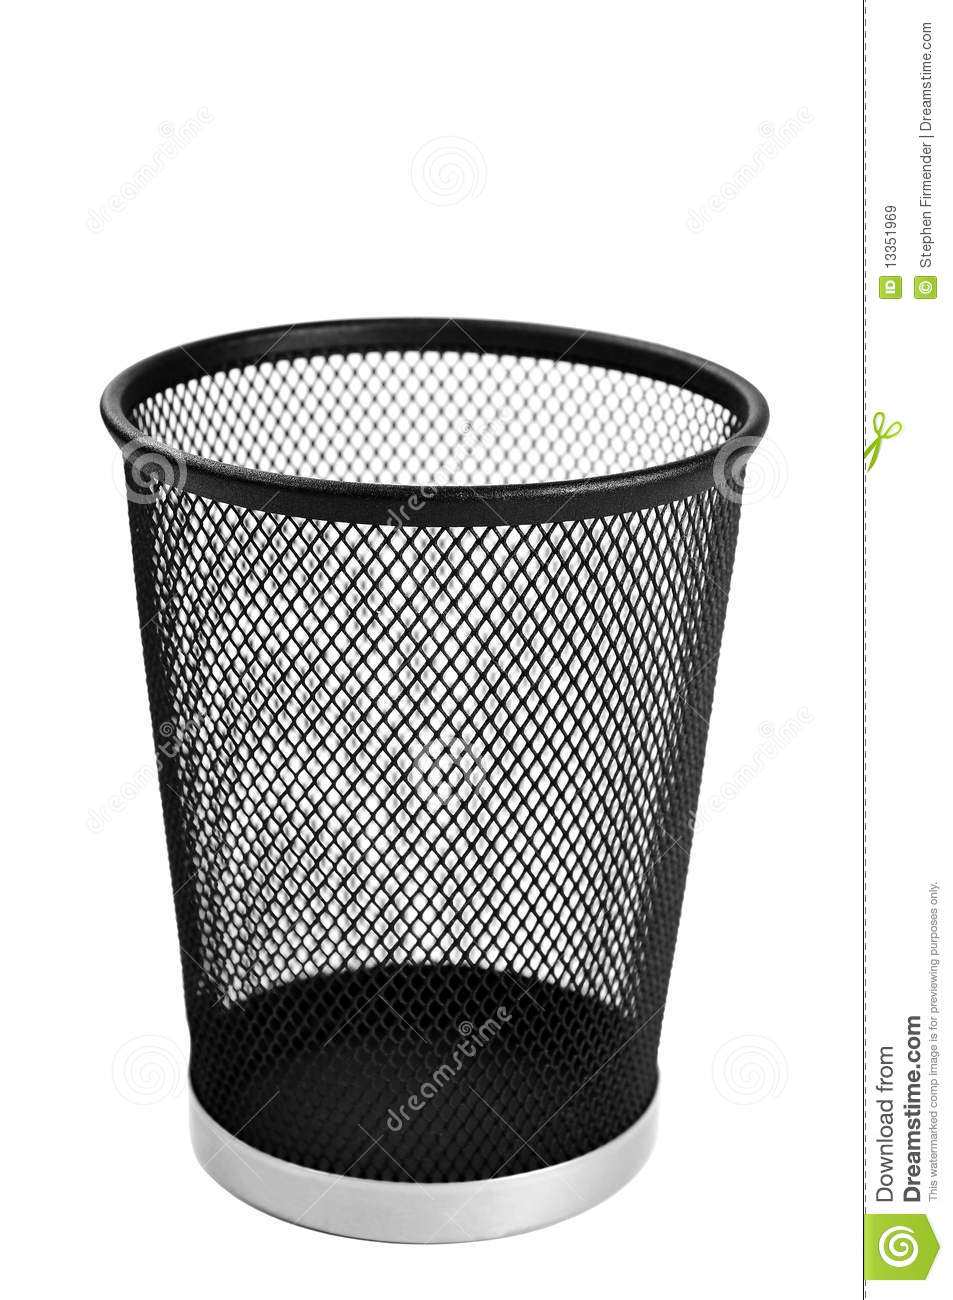 Wastepaper Basket Entrancing Waste Paper Basket Royalty Free Stock Images  Image 13351969 Design Decoration